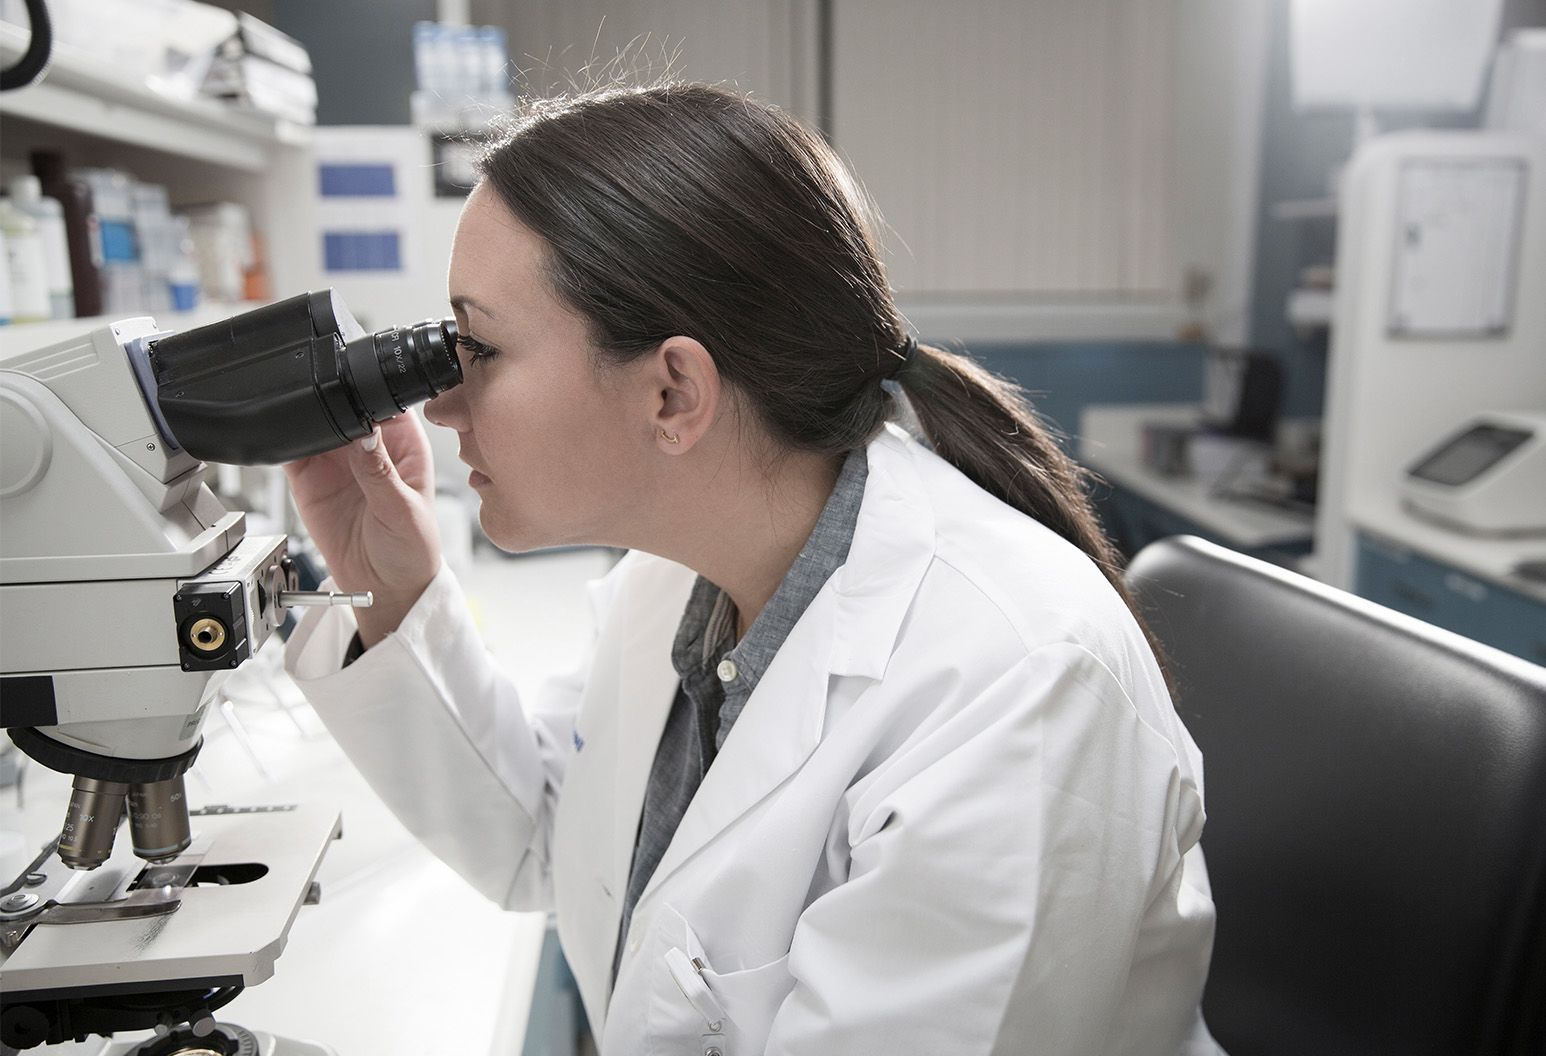 Young woman with brown hair and white lab coat is seen from the side looking into microscope